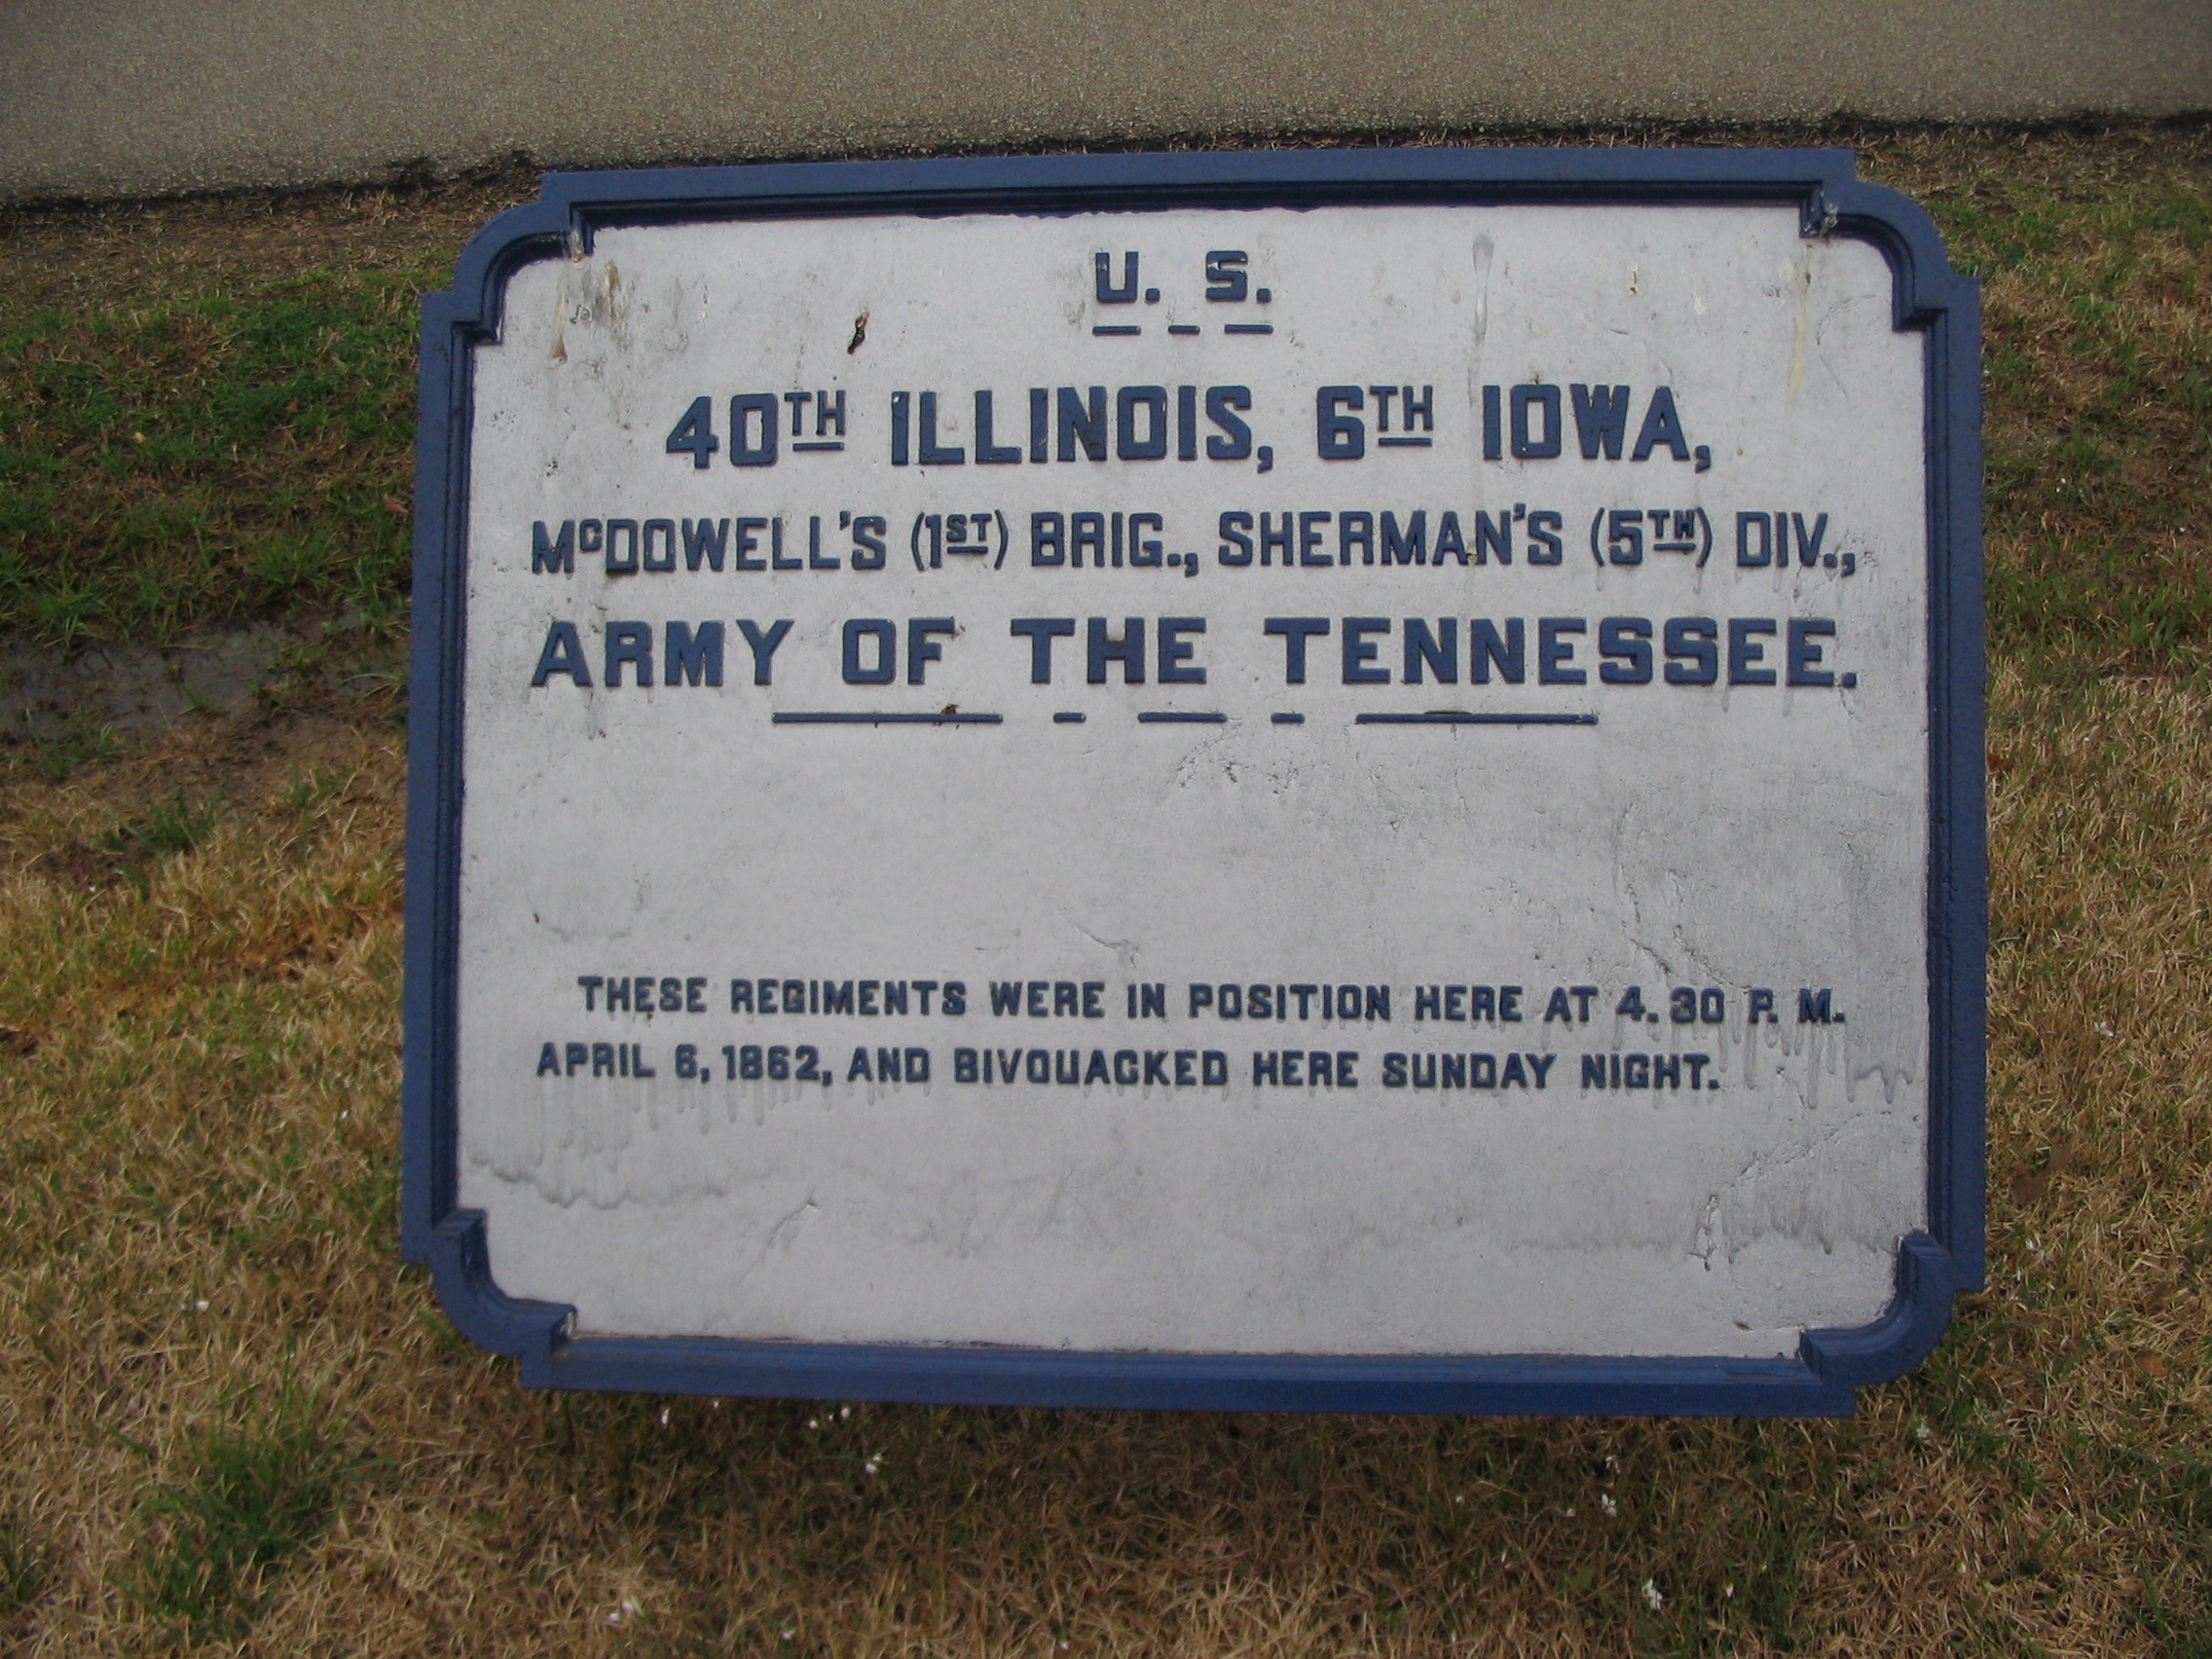 40th Illinois - 6th Iowa Infantry Regiments Tablet